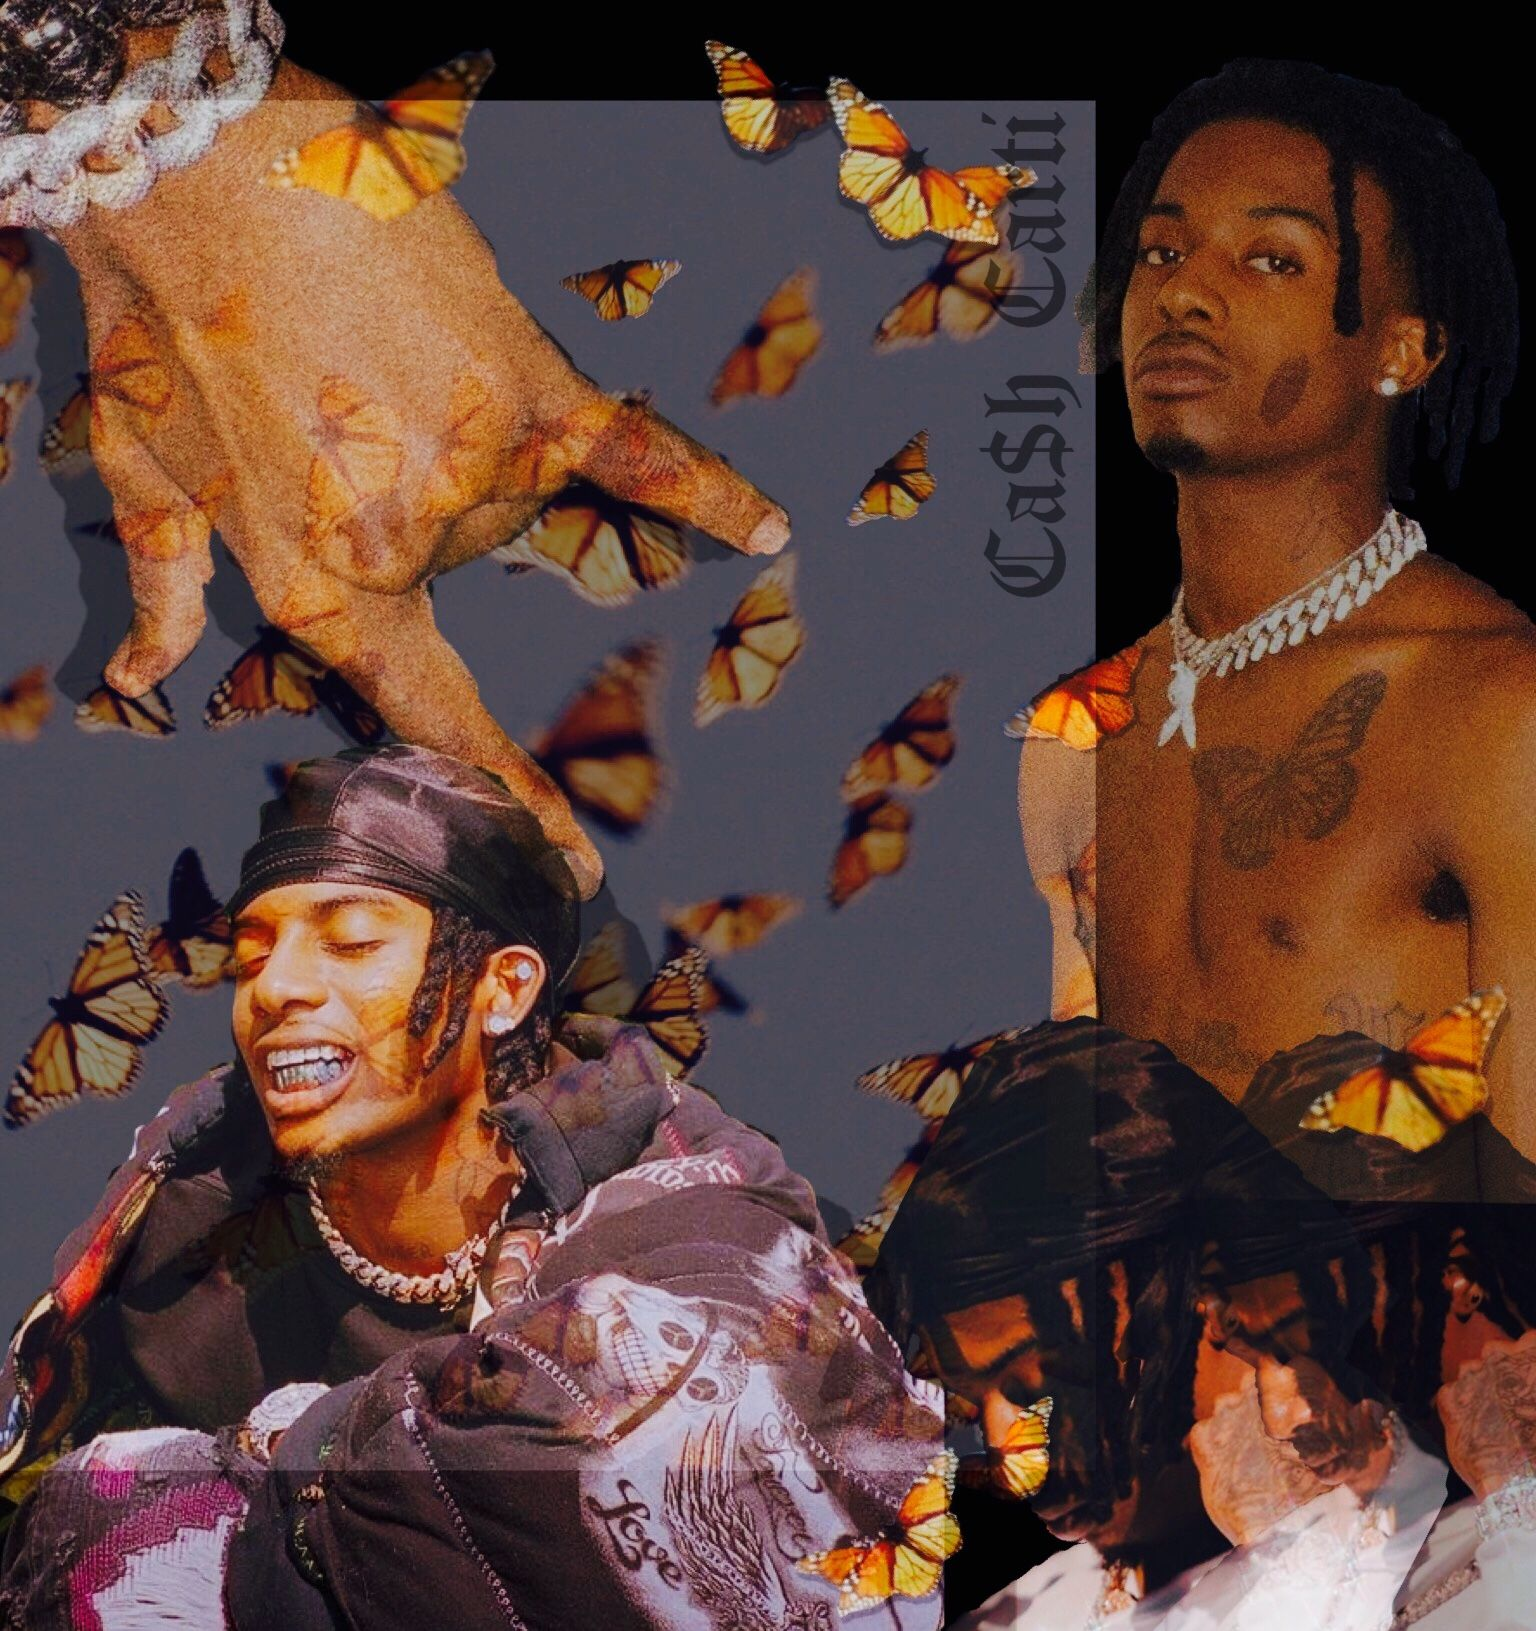 Playboi carti Edgy wallpaper Rap wallpaper Aesthetic pastel 1536x1631